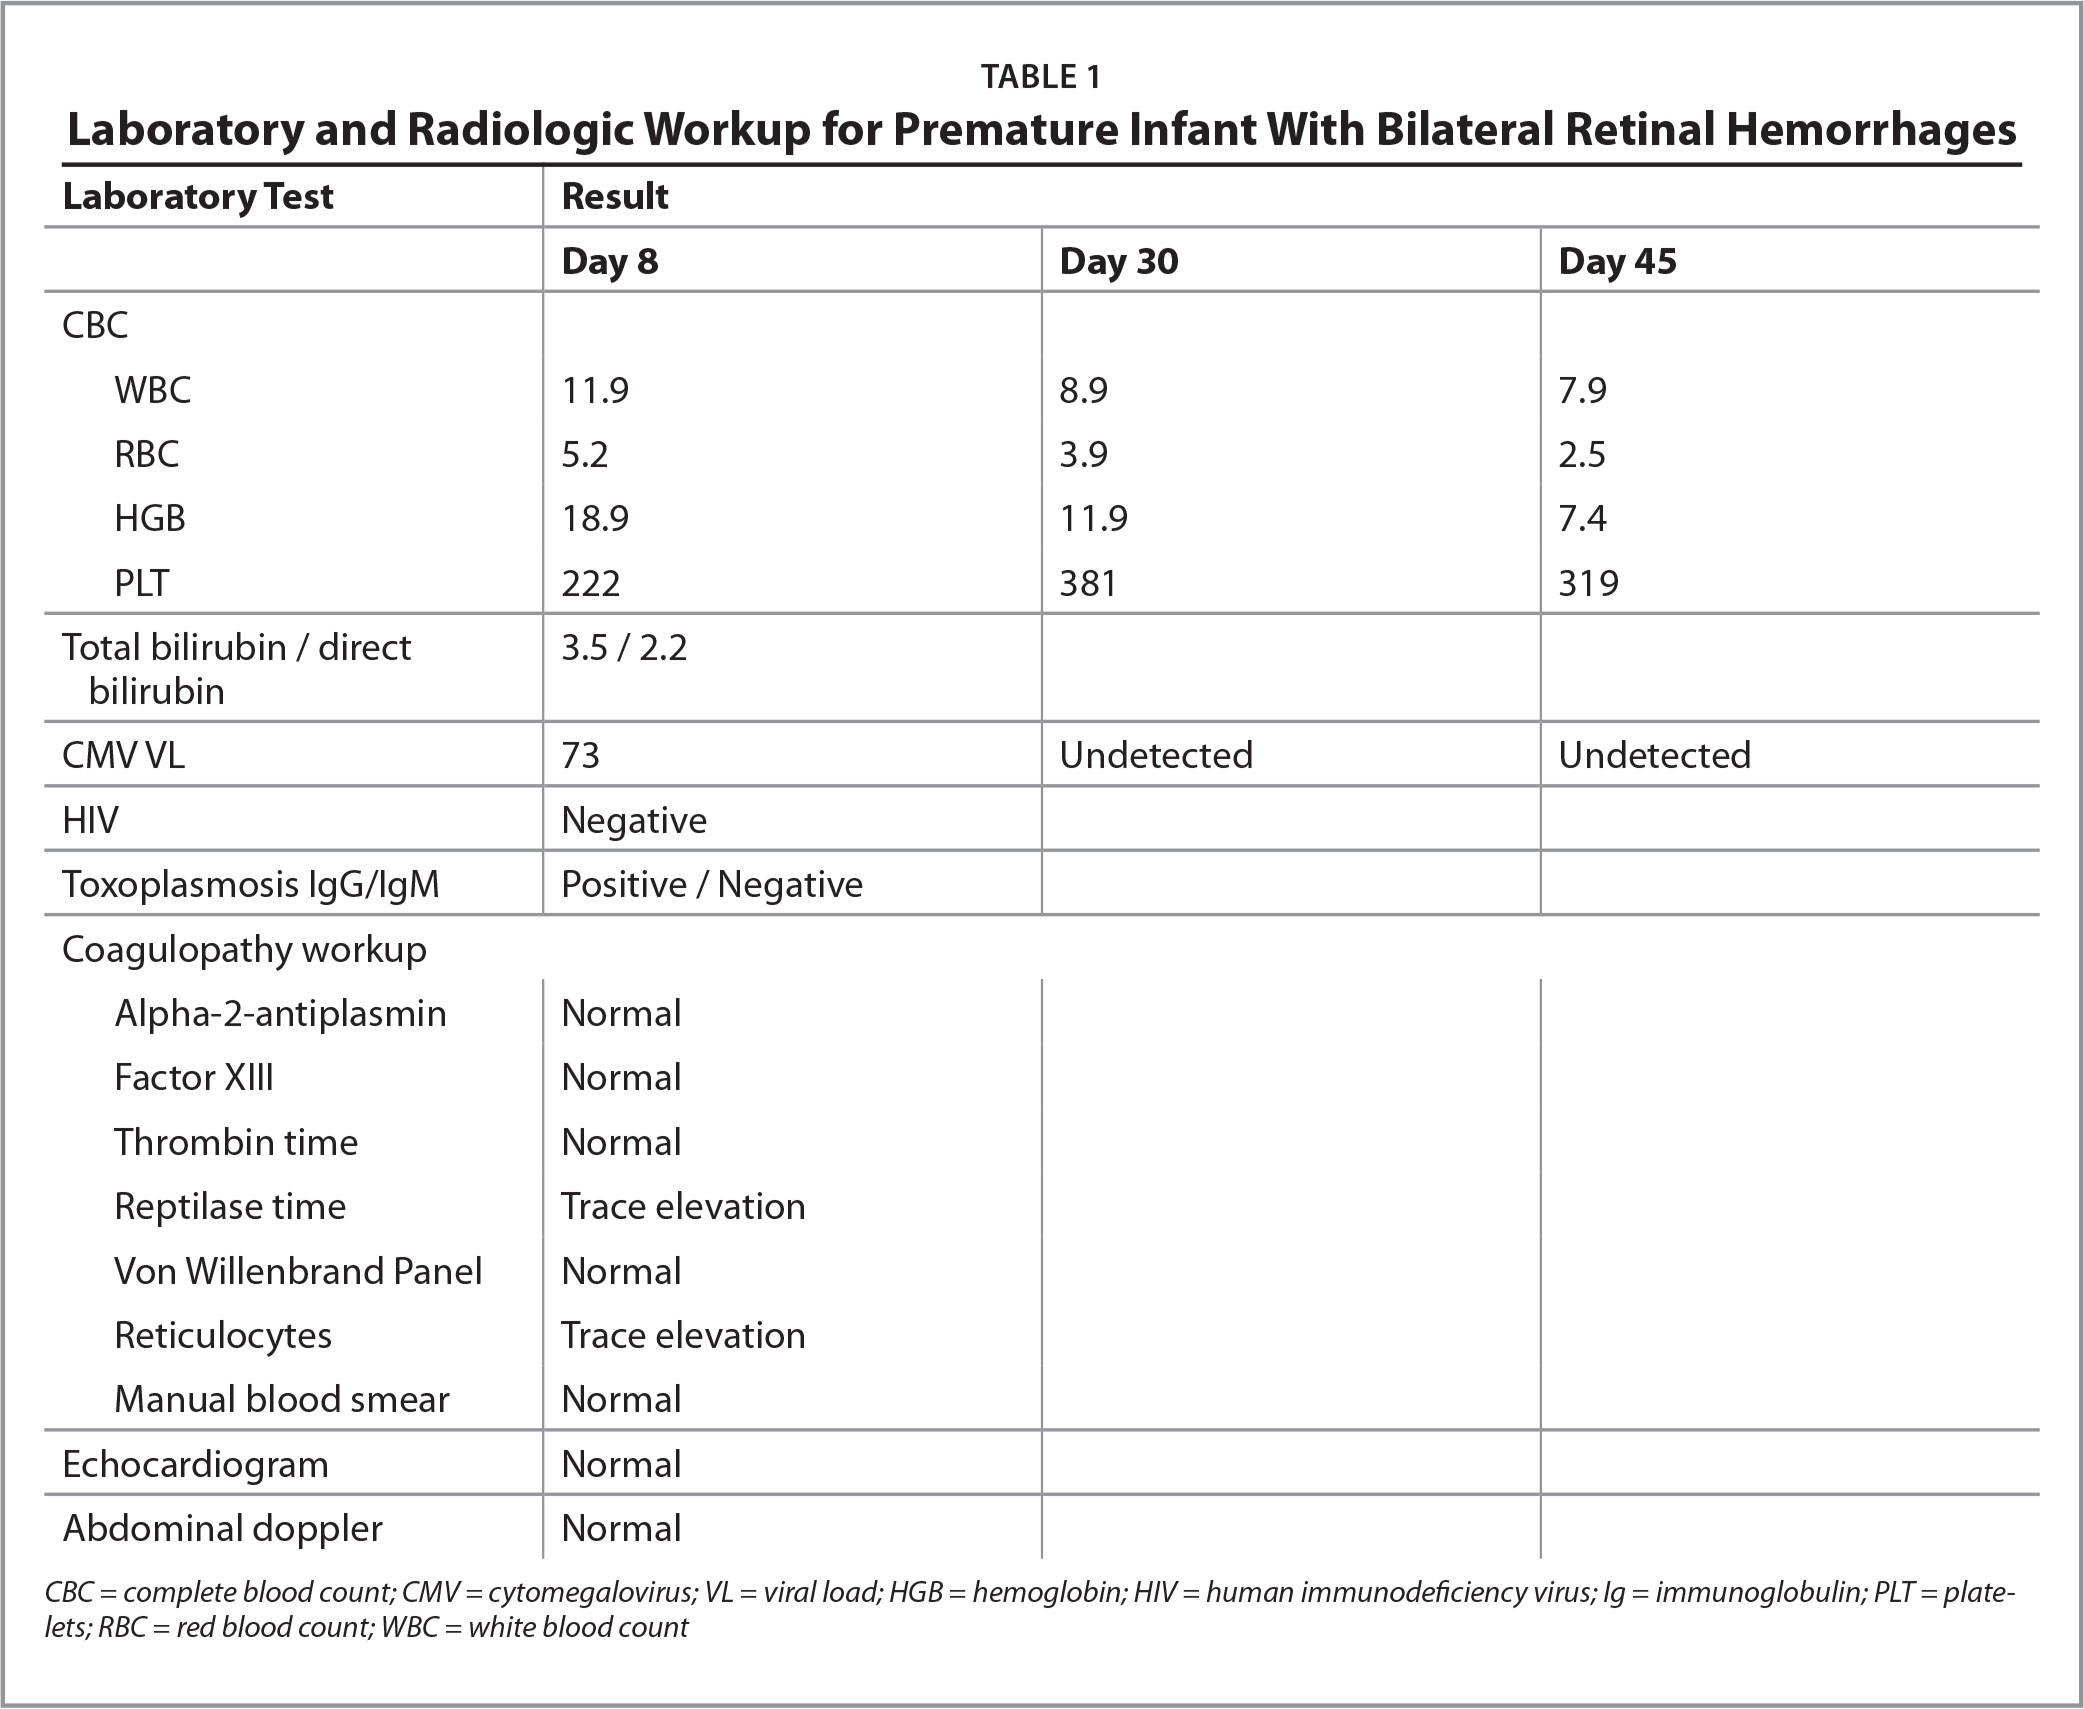 Laboratory and Radiologic Workup for Premature Infant With Bilateral Retinal Hemorrhages